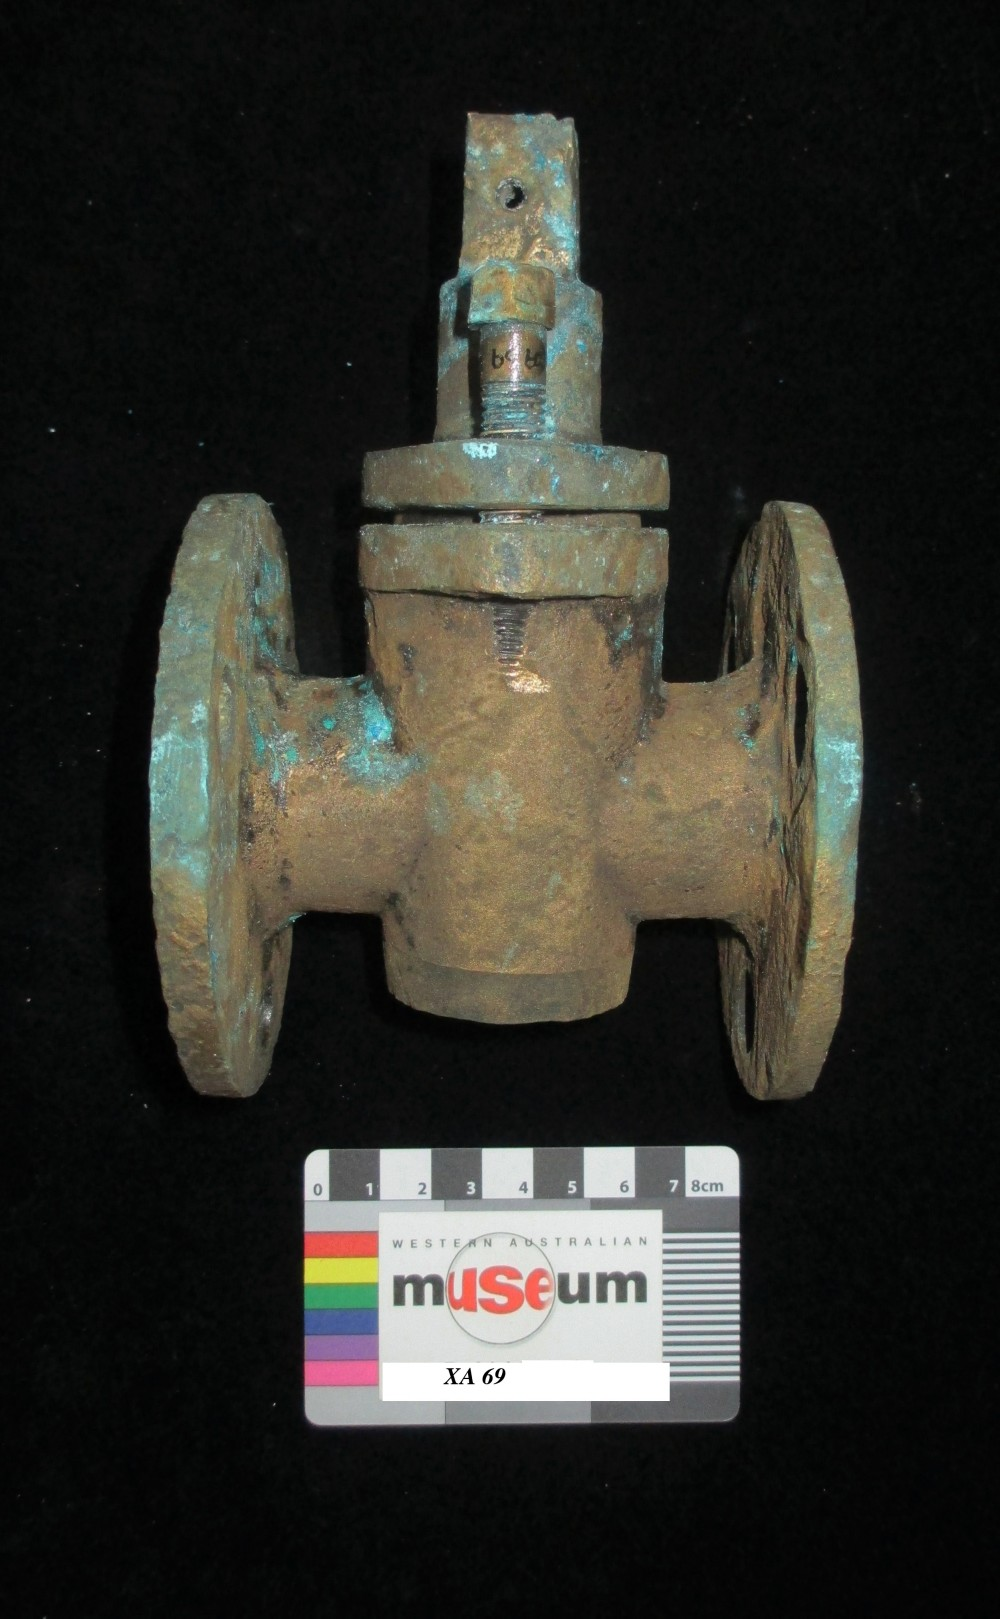 Ship's fittings artefact recovered from Xantho